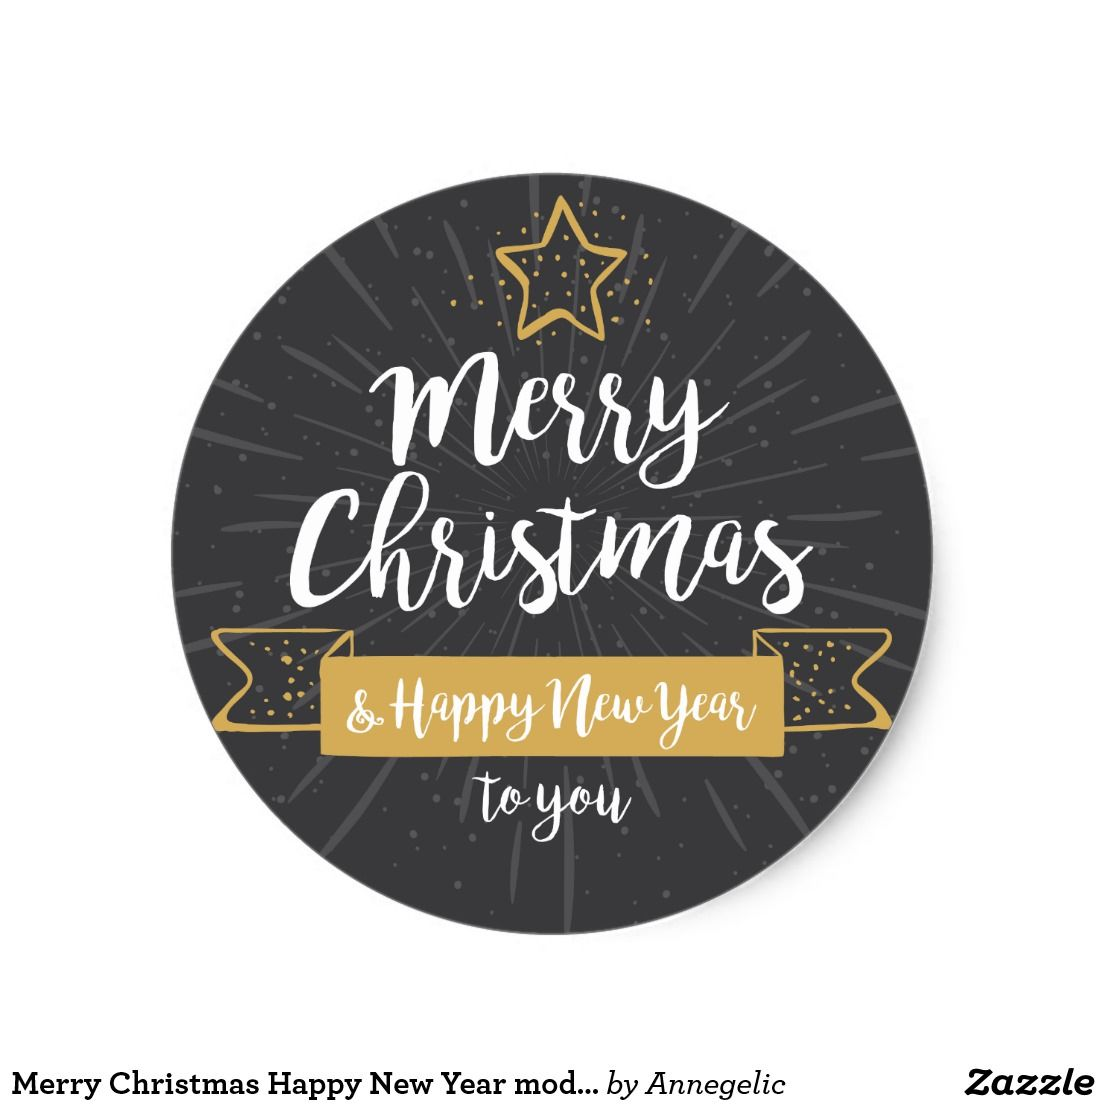 Merry Christmas Happy New Year Modern Handwritten Classic Round Sticker Zazzle Com In 2021 Merry Christmas And Happy New Year Christmas Cards Free Xmas Tags